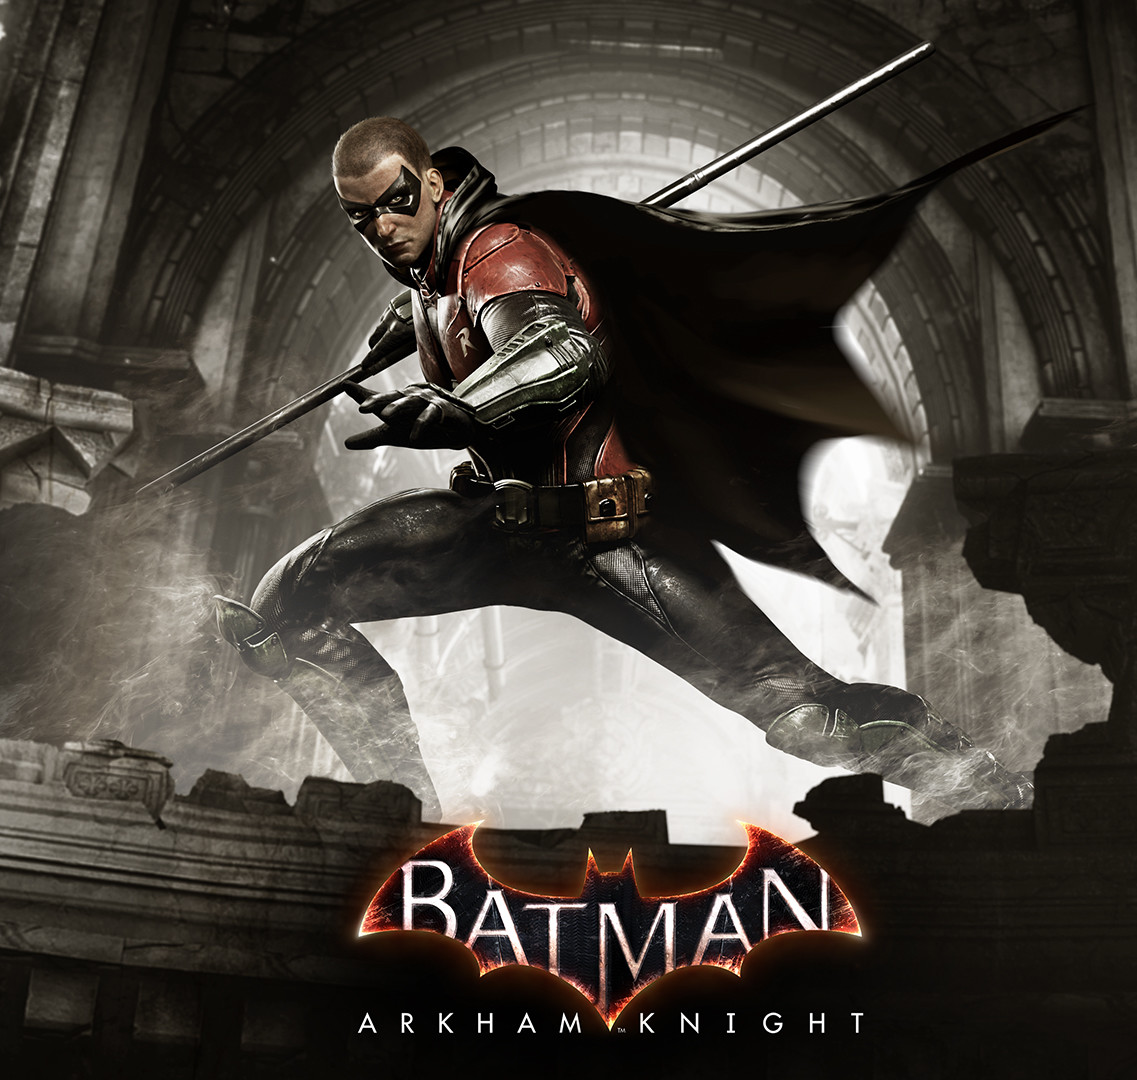 Batman Arkham Knight Concept Art